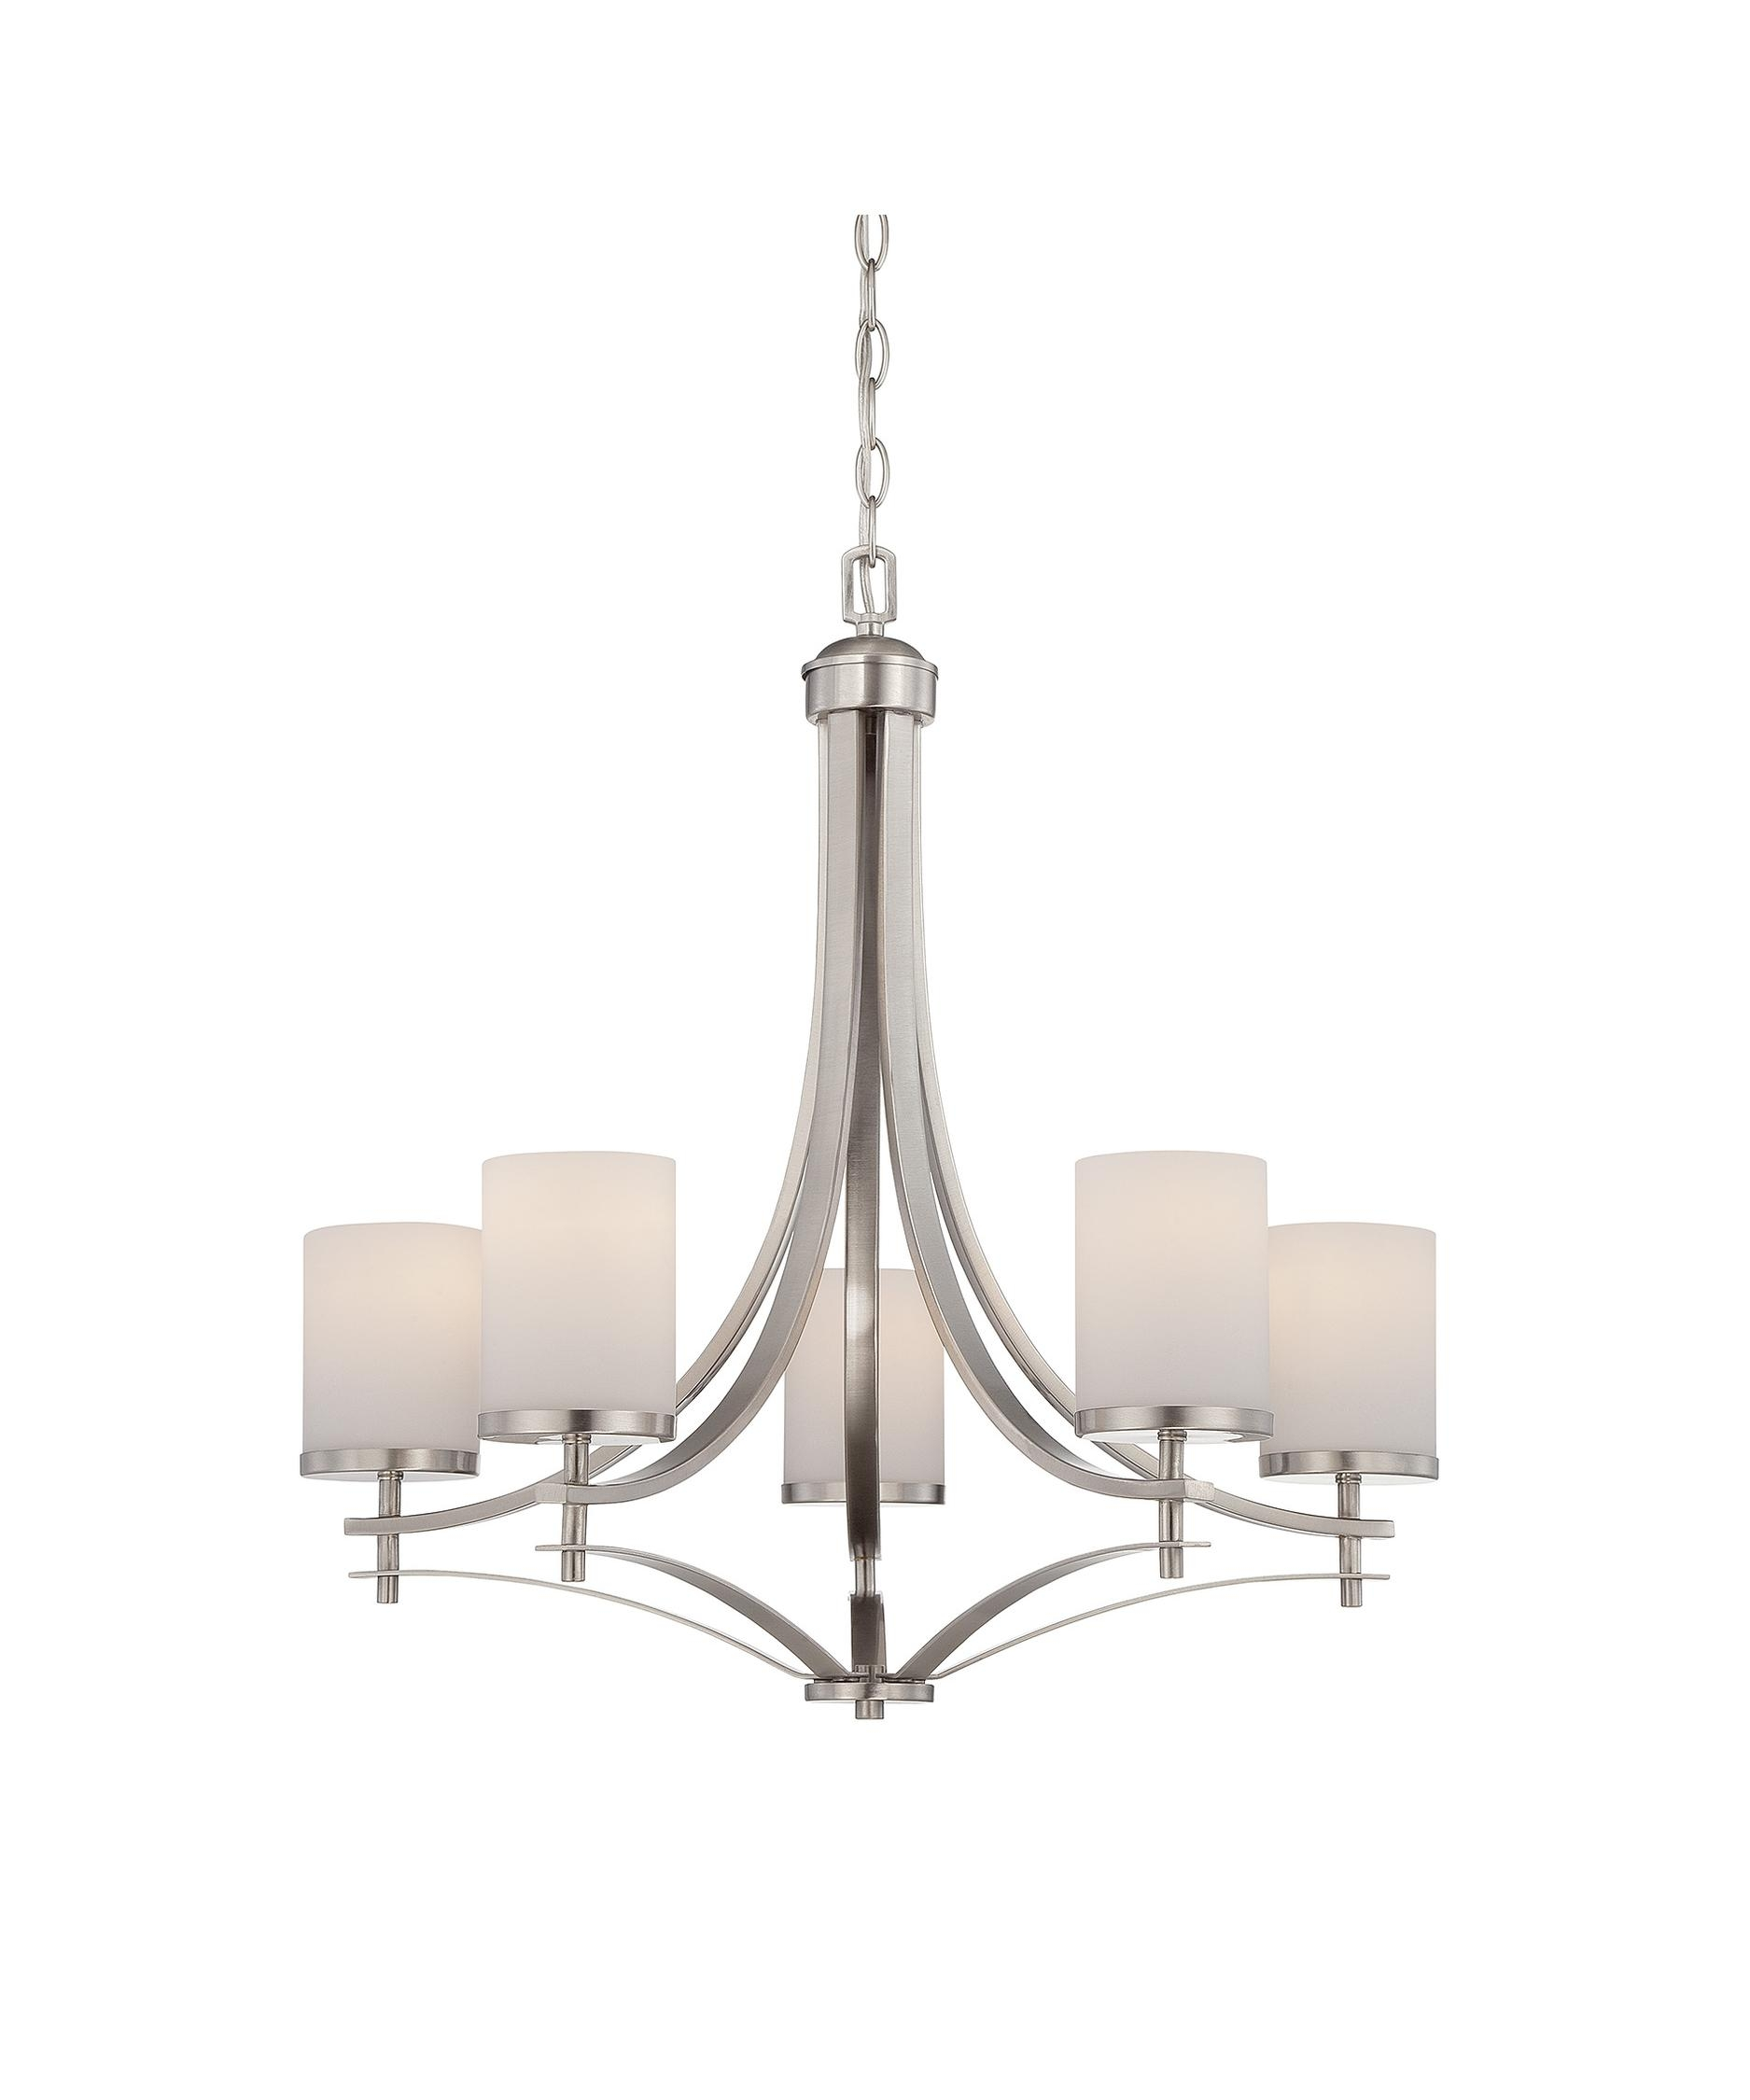 Savoy House 1 330 5 Colton 26 Inch Wide 5 Light Chandelier For Savoy House Chandeliers (Image 13 of 25)